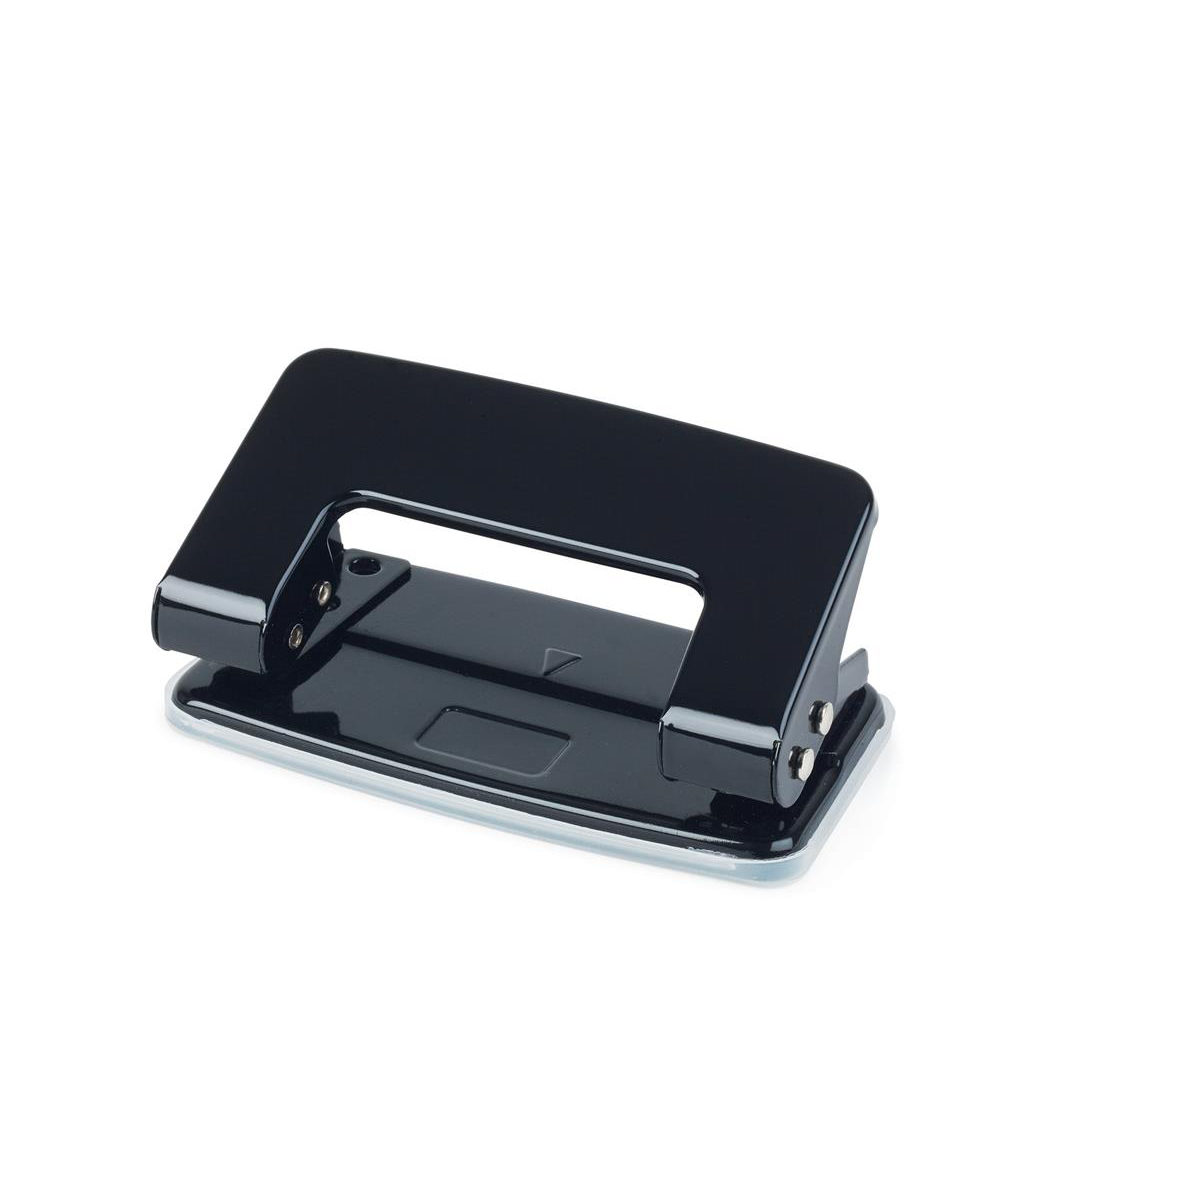 Hole Punches 5 Star Value Hole Punch Light Duty